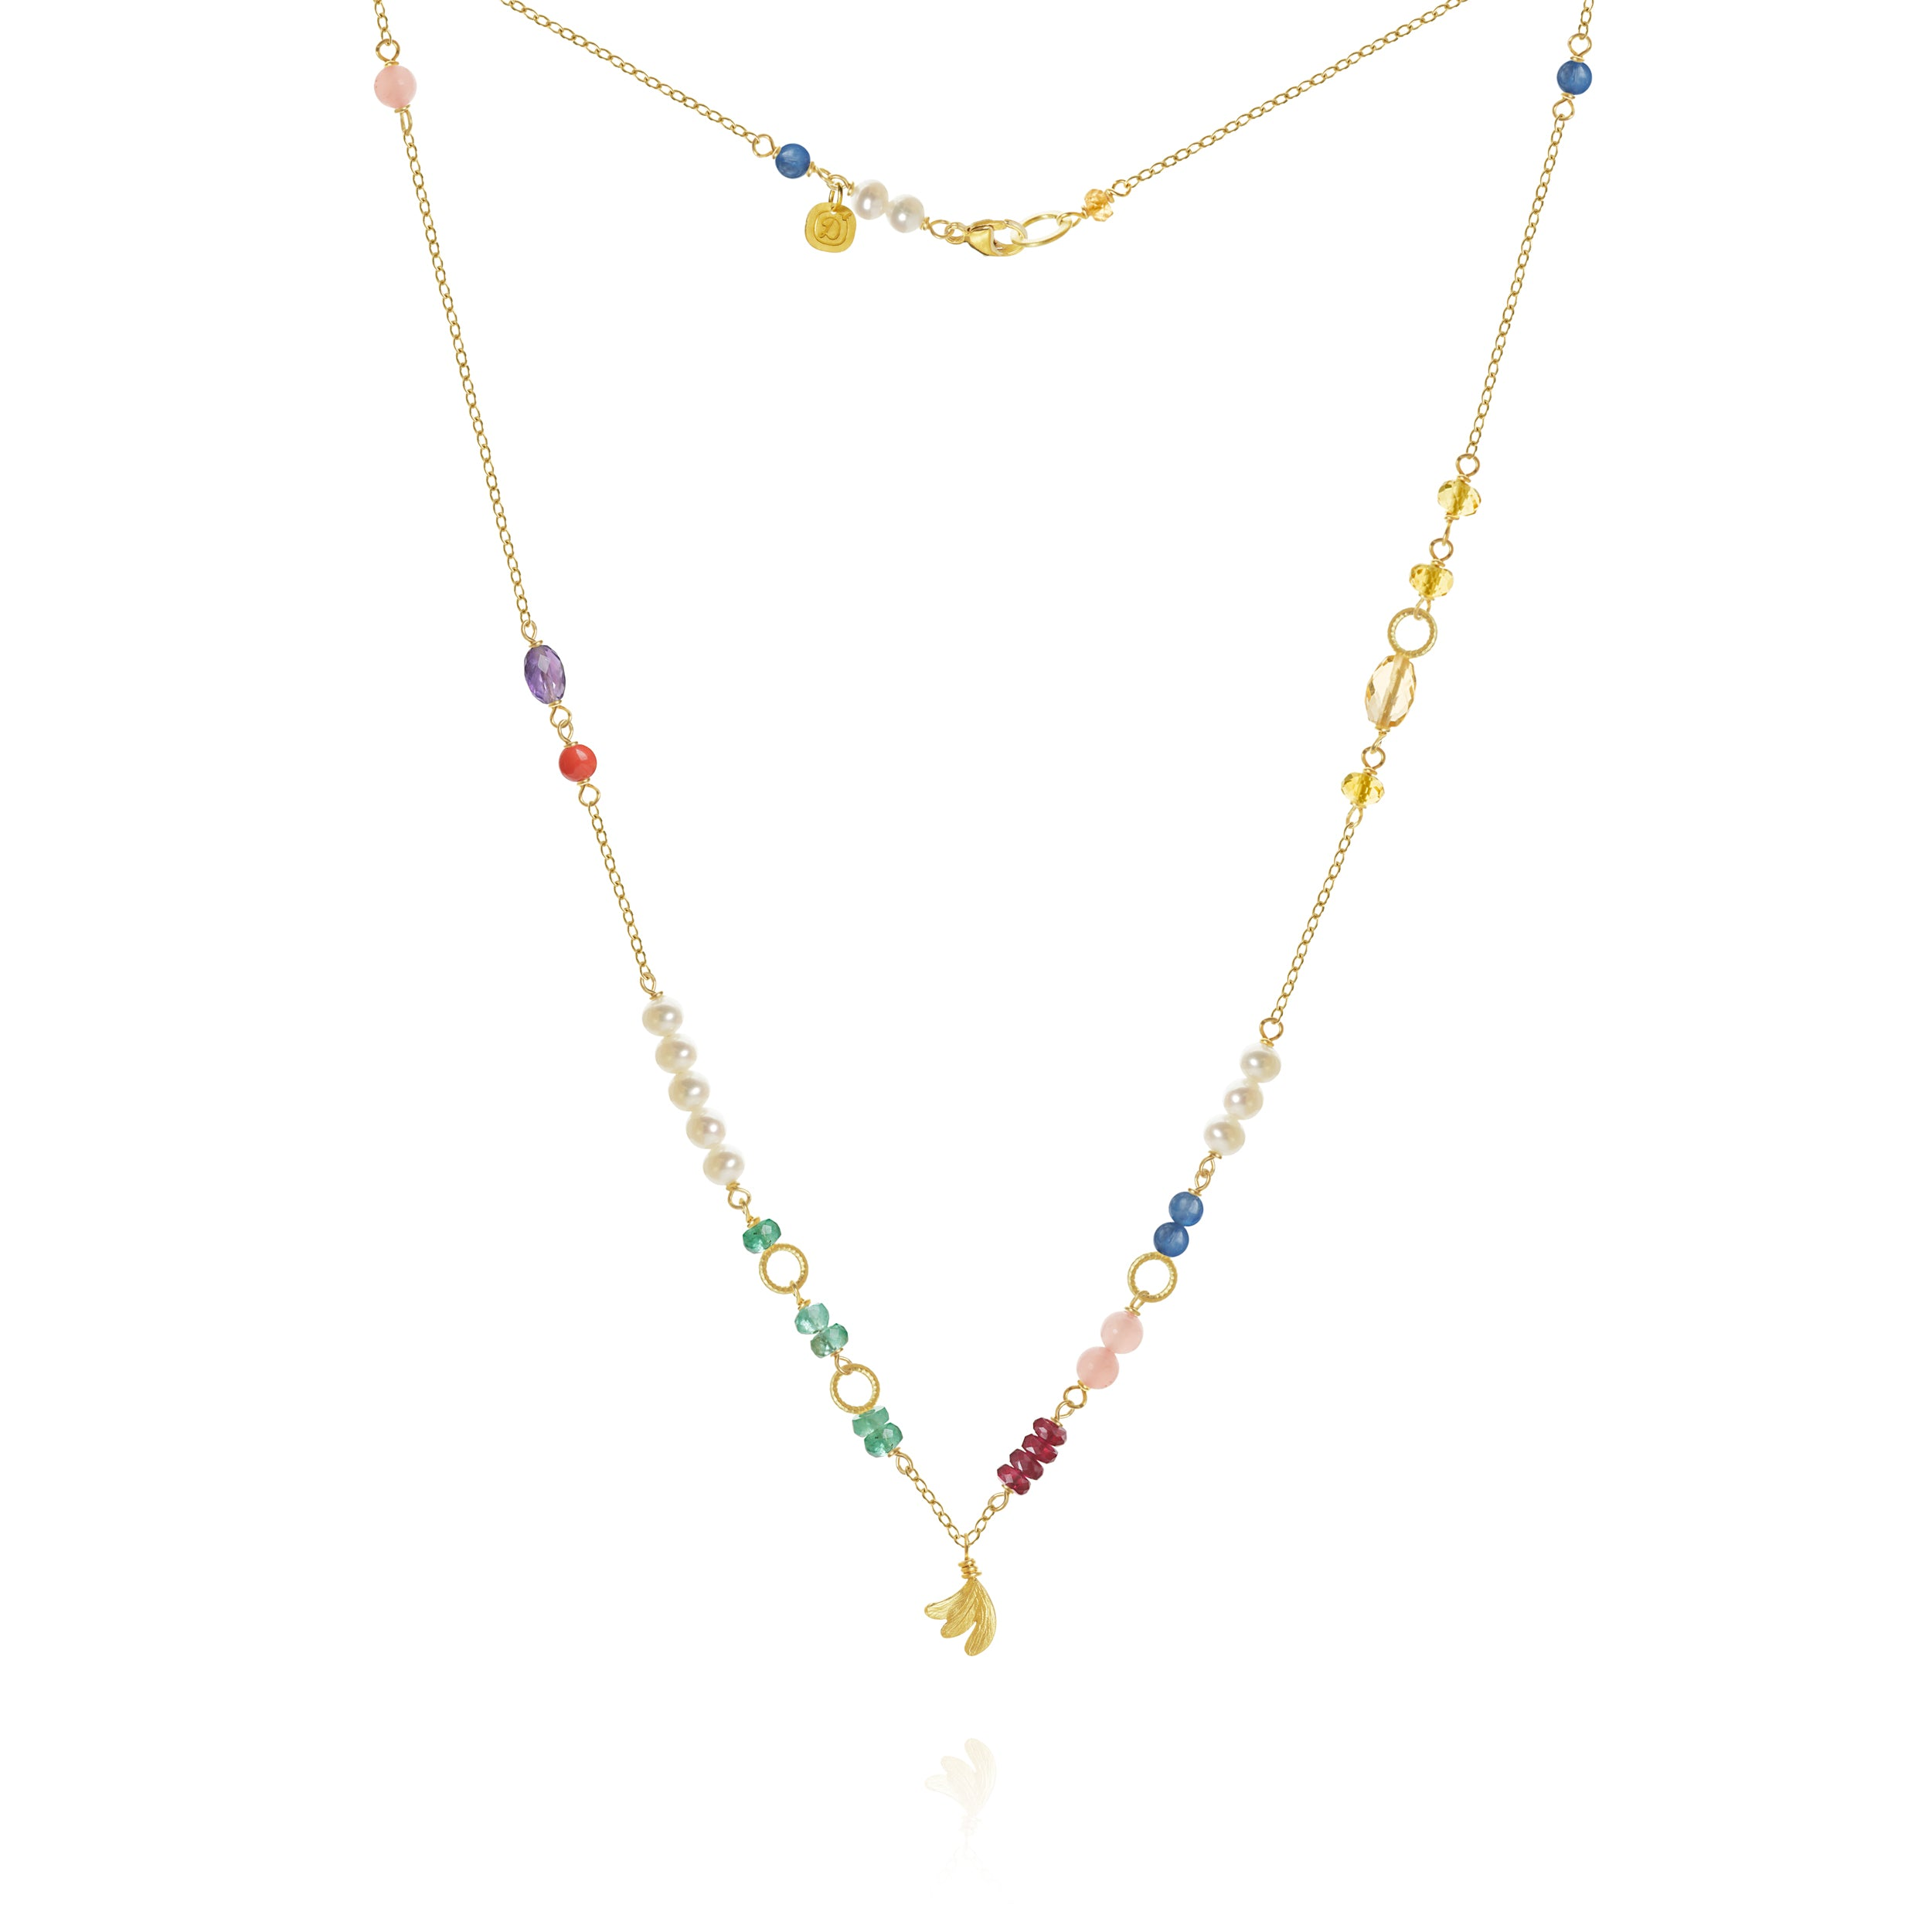 Piccolo Bloom necklace with Aura, emerald, ruby, gauva quartz, kyanite, freshwater pearls, cetrin, coral and amethyst, 43 cm.